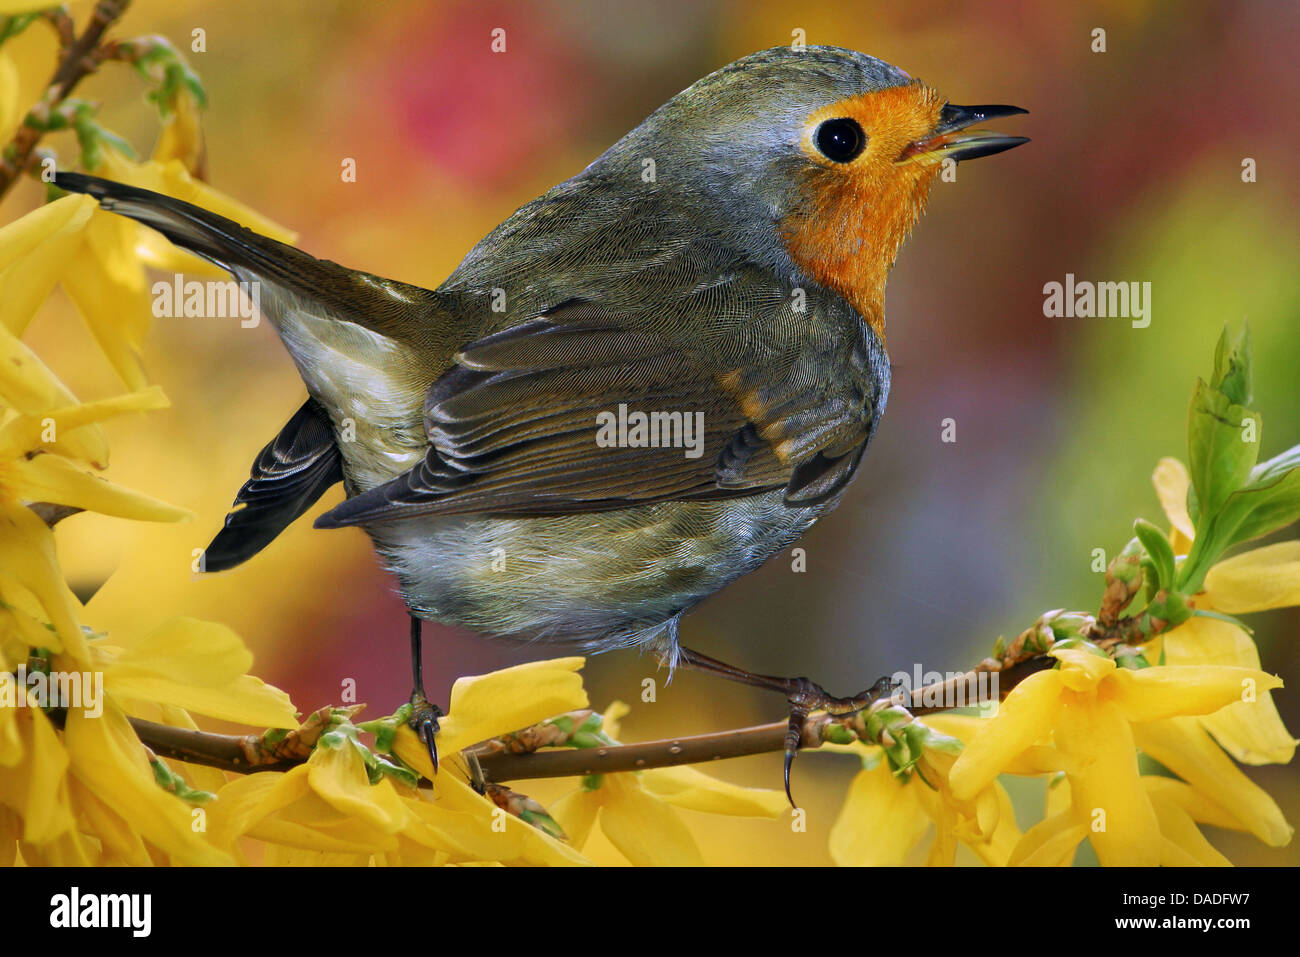 European robin (Erithacus rubecula), sitting on a branch of Forsythia, Germany, Bavaria - Stock Image